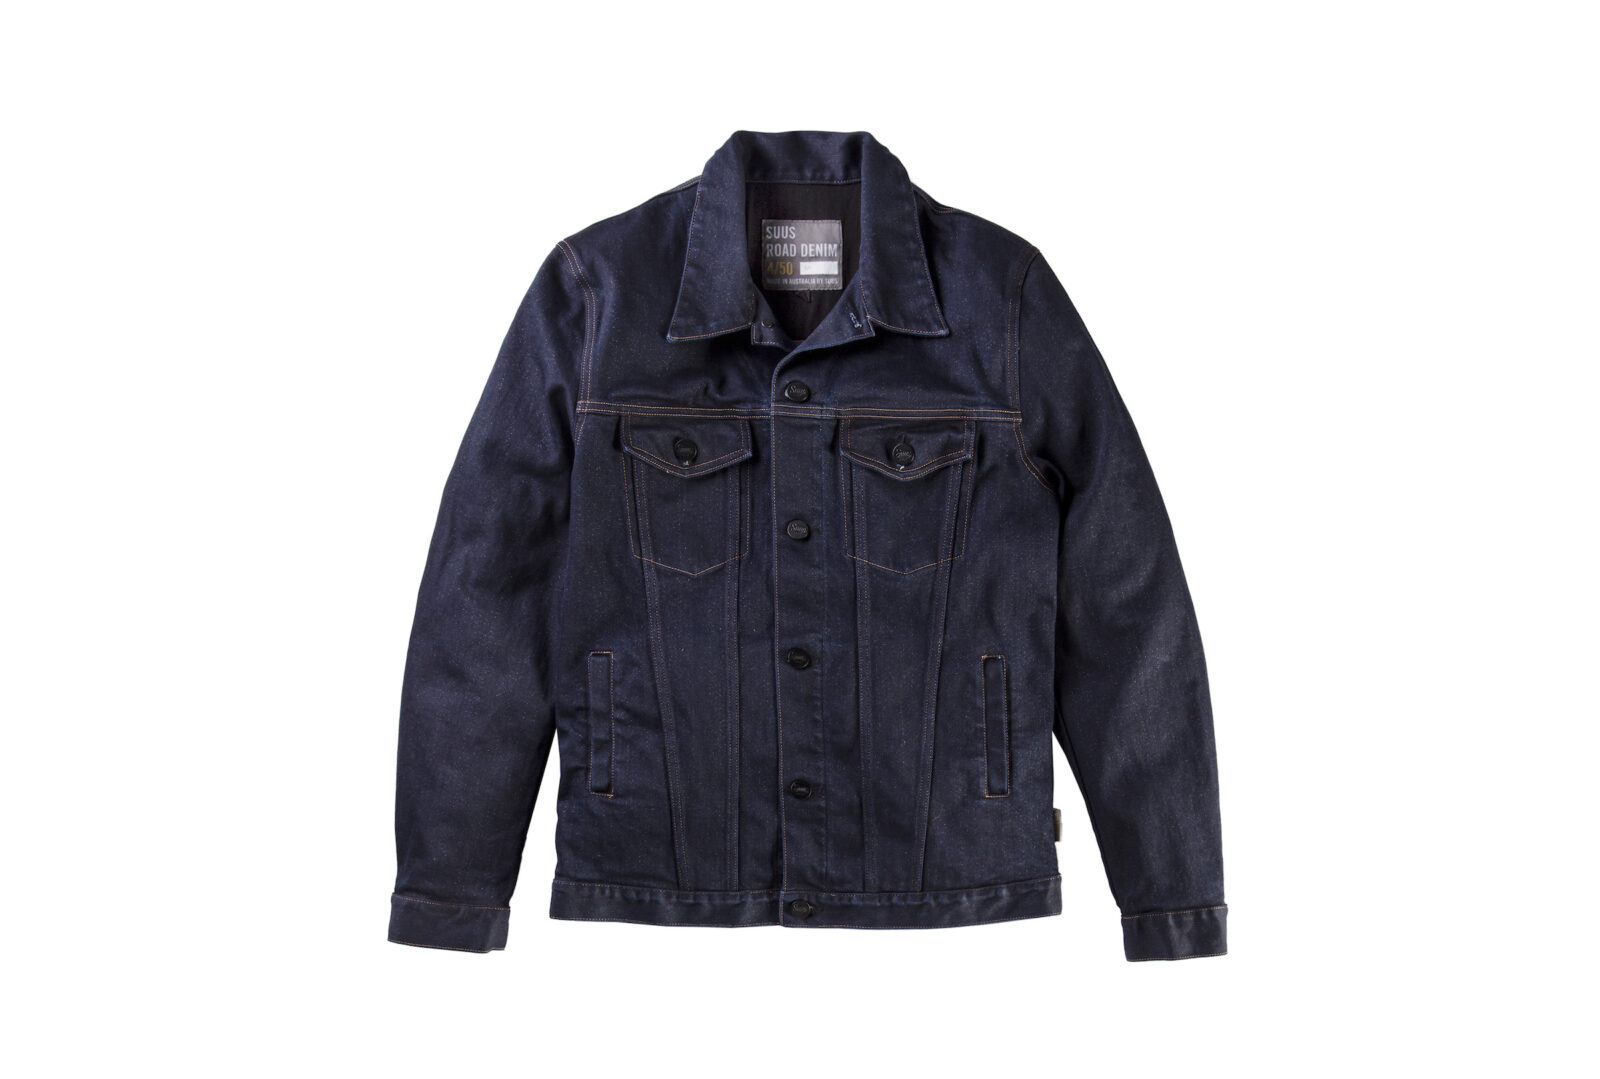 Suus Road Denim 450 Motorcycle Jacket 1600x1079 - Suus Road Denim 450 Motorcycle Jacket